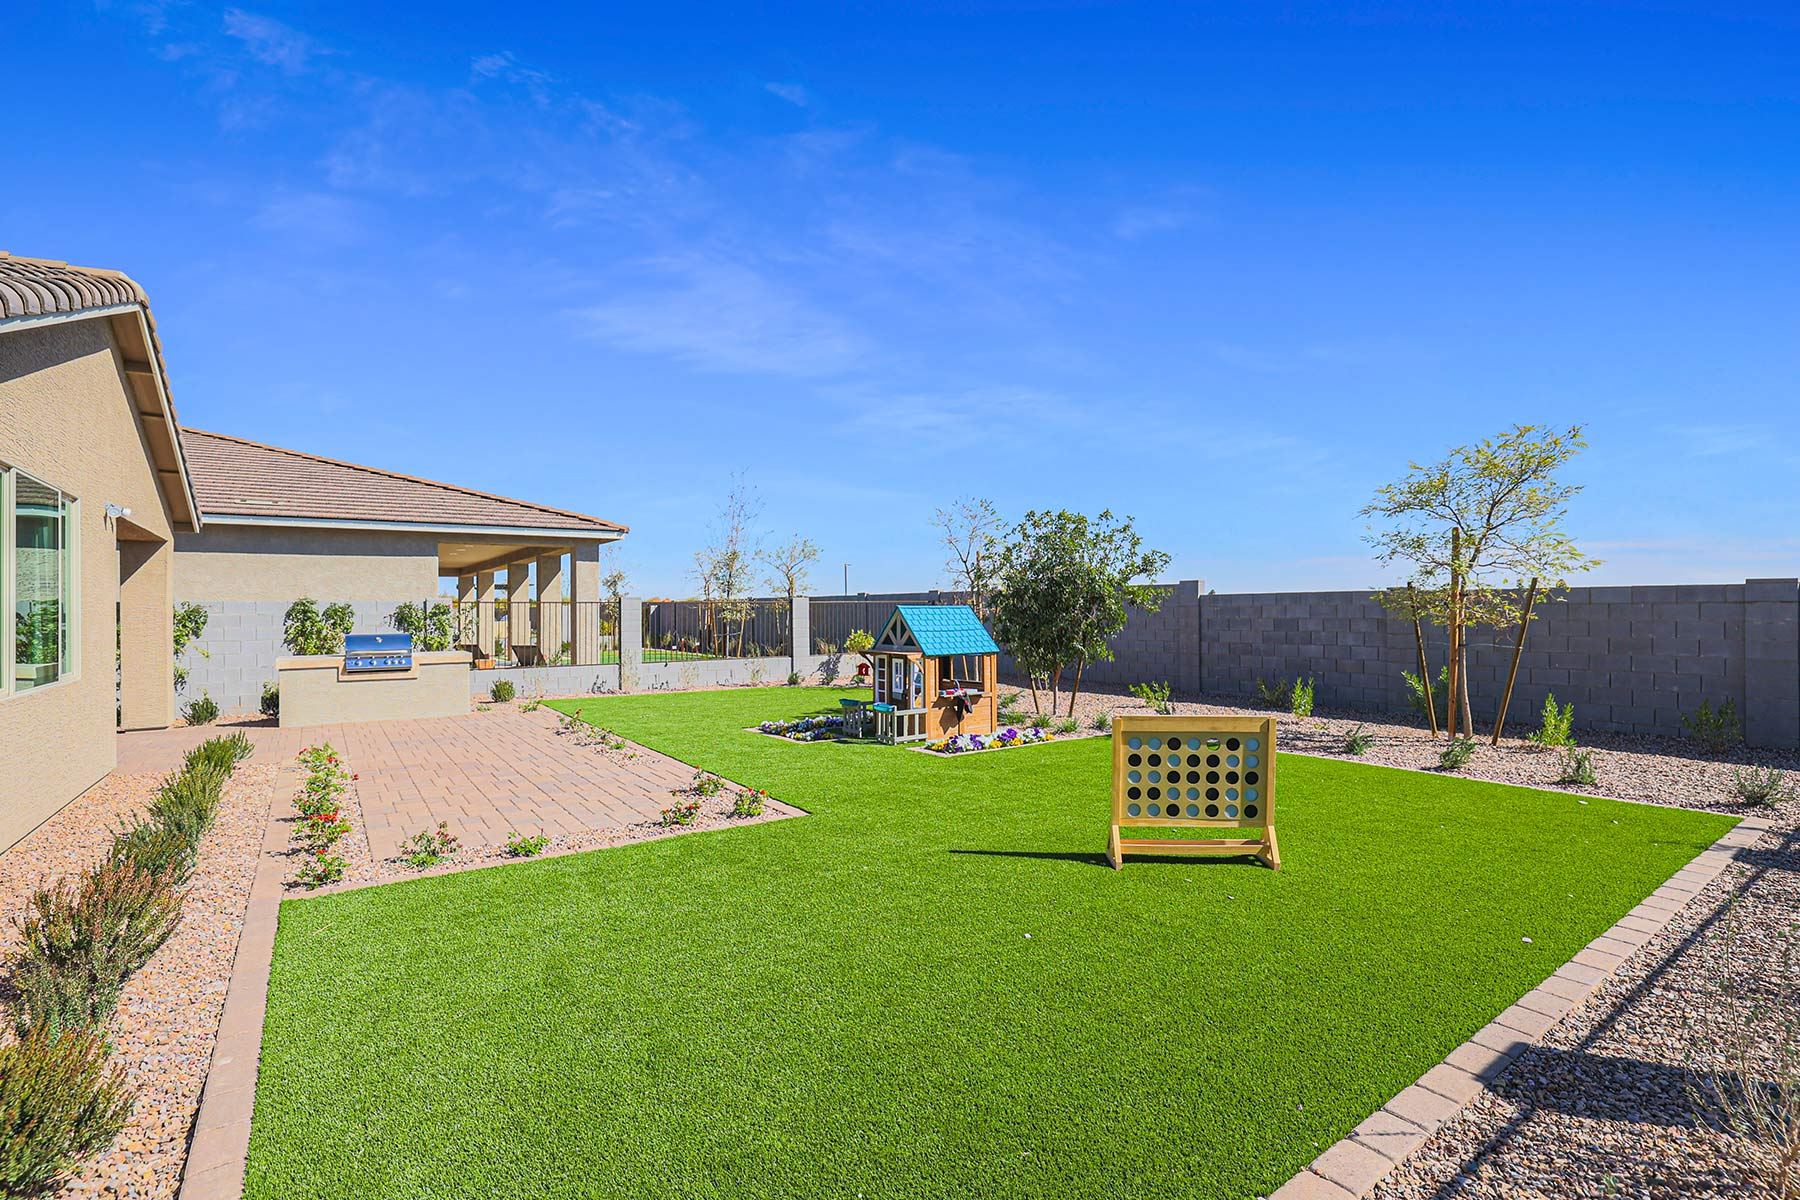 Aries Plan MATPHX_AZC_Aries_BY1_1800x1200 at Azure Canyon in Litchfield Park Arizona by Mattamy Homes